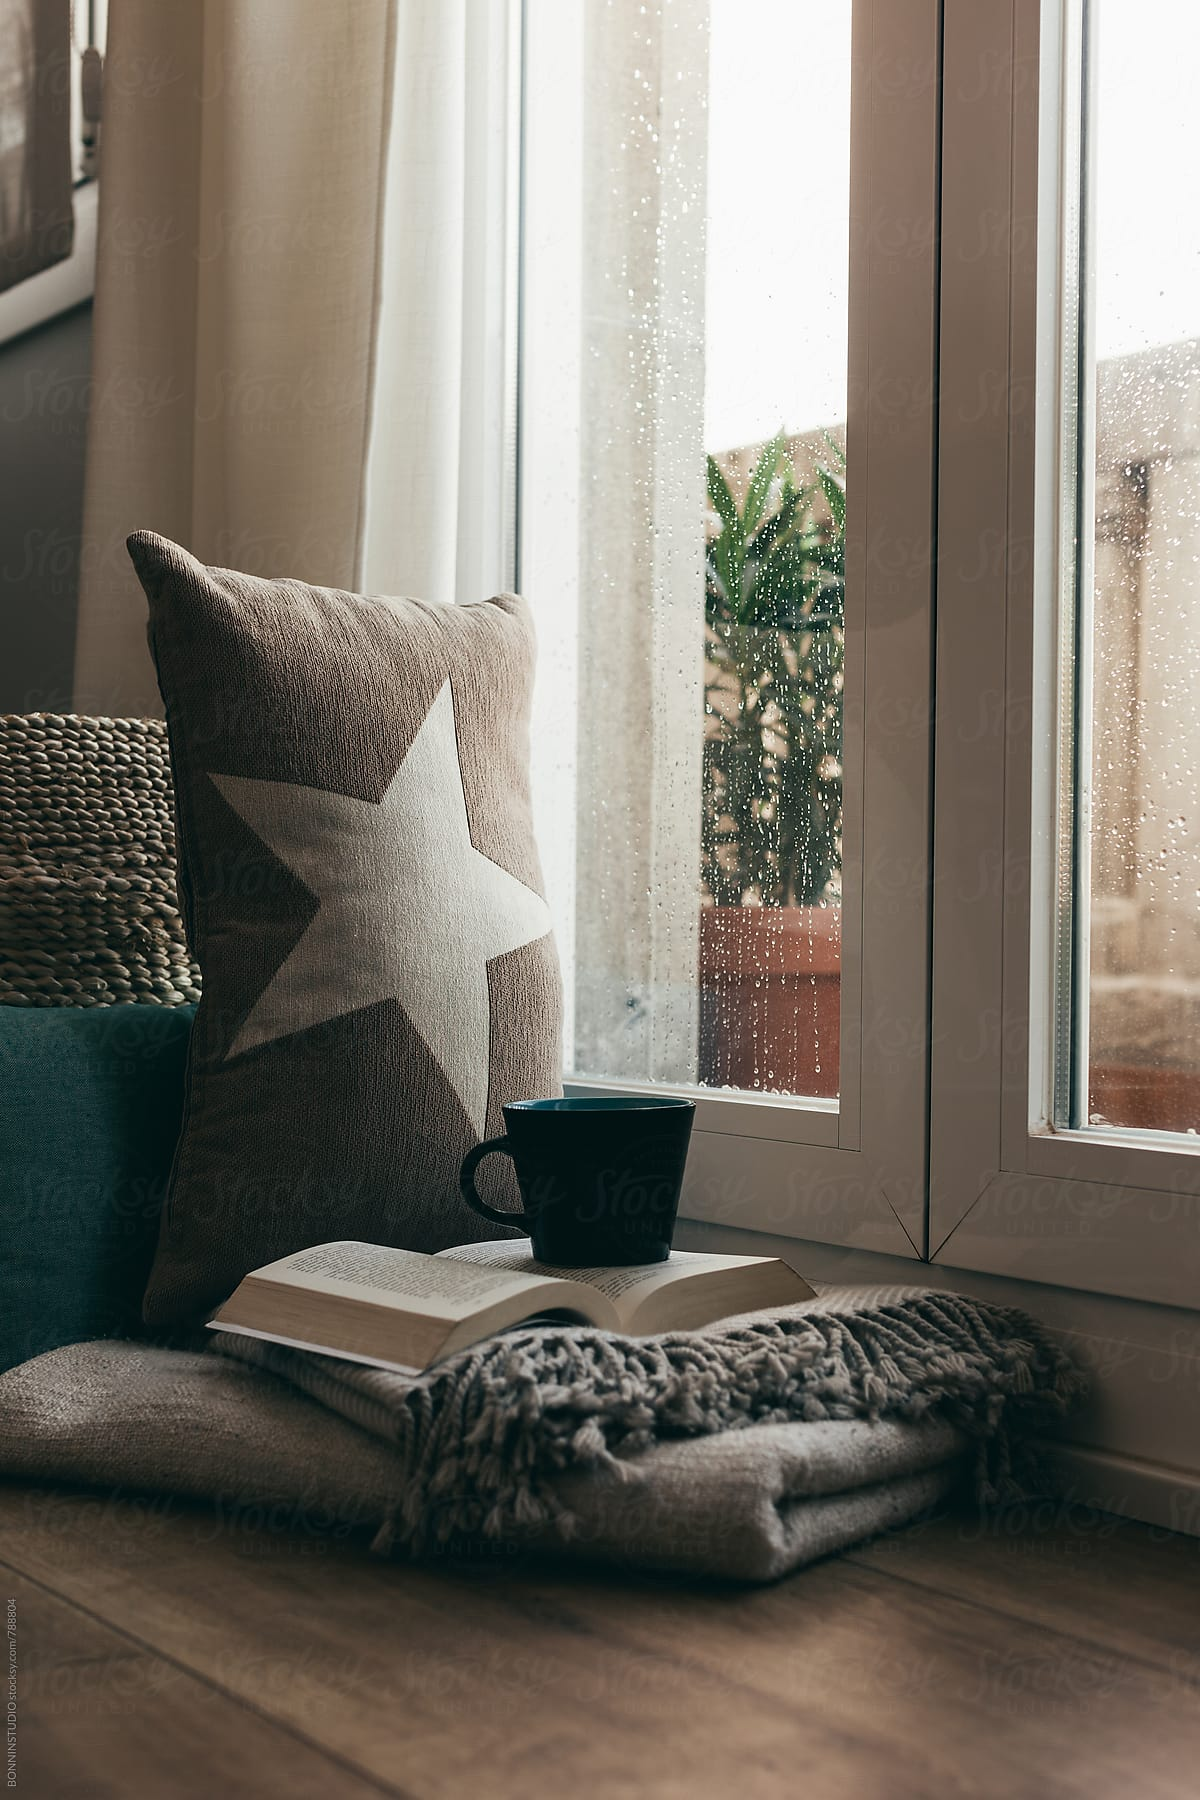 Coffee time in a cozy home on a rainy day. by BONNINSTUDIO ... on riverside home, sunny day home, garden home, easter home, gloomy day home, cloudy day home, fun home, health home, black and white home, paul reubens home, cold home, blu home, farm home,